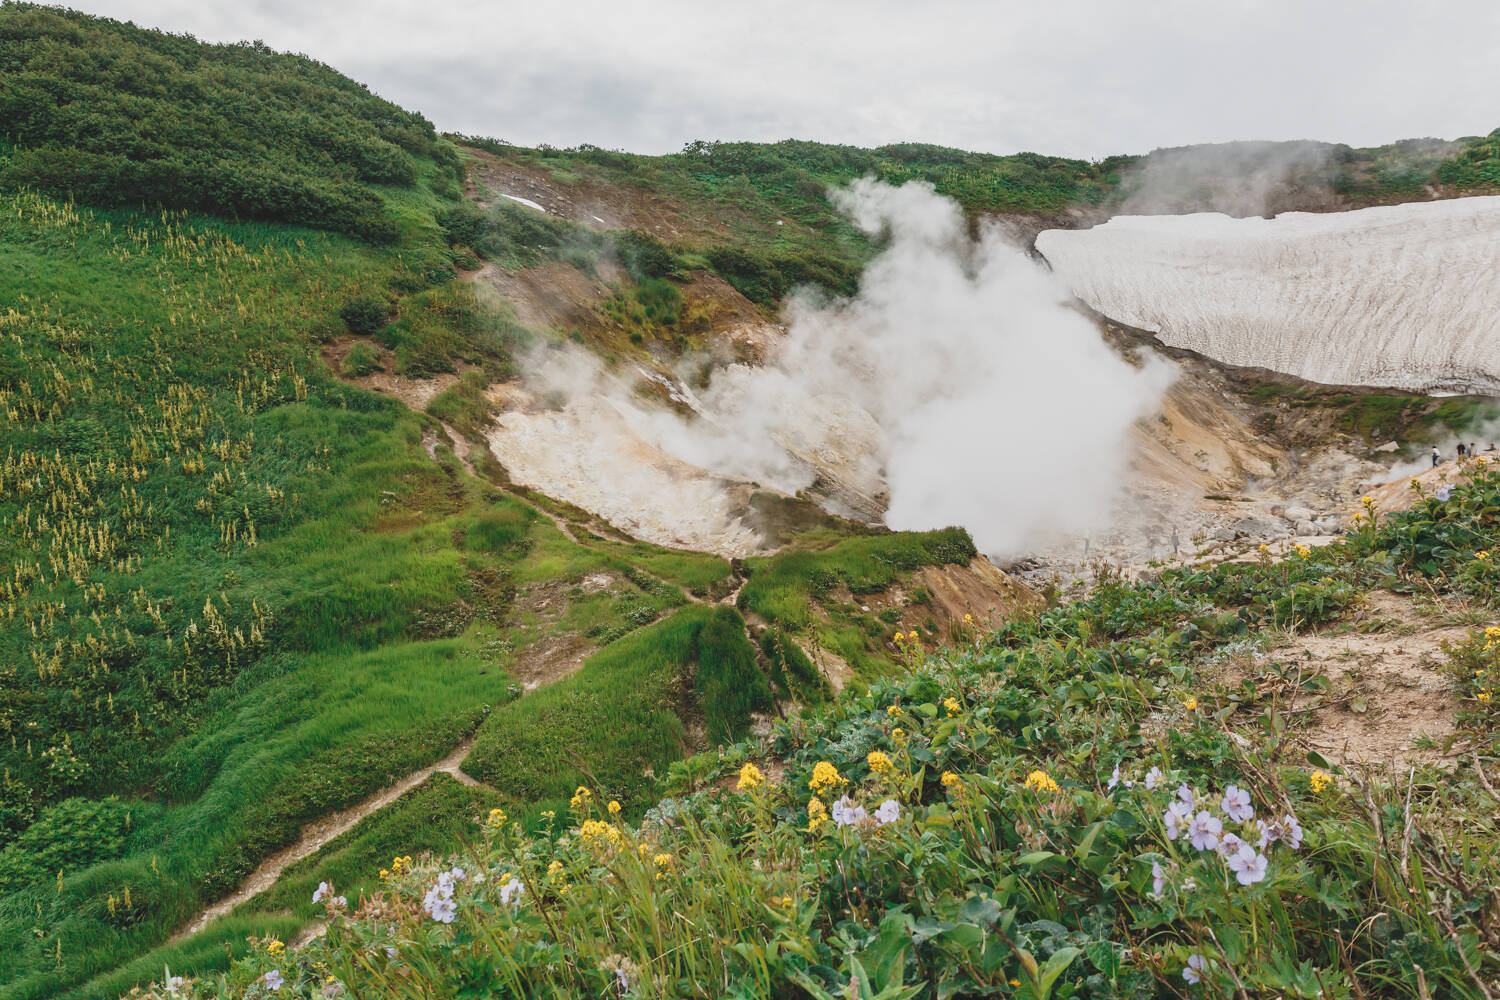 The Small Valley of Geysers